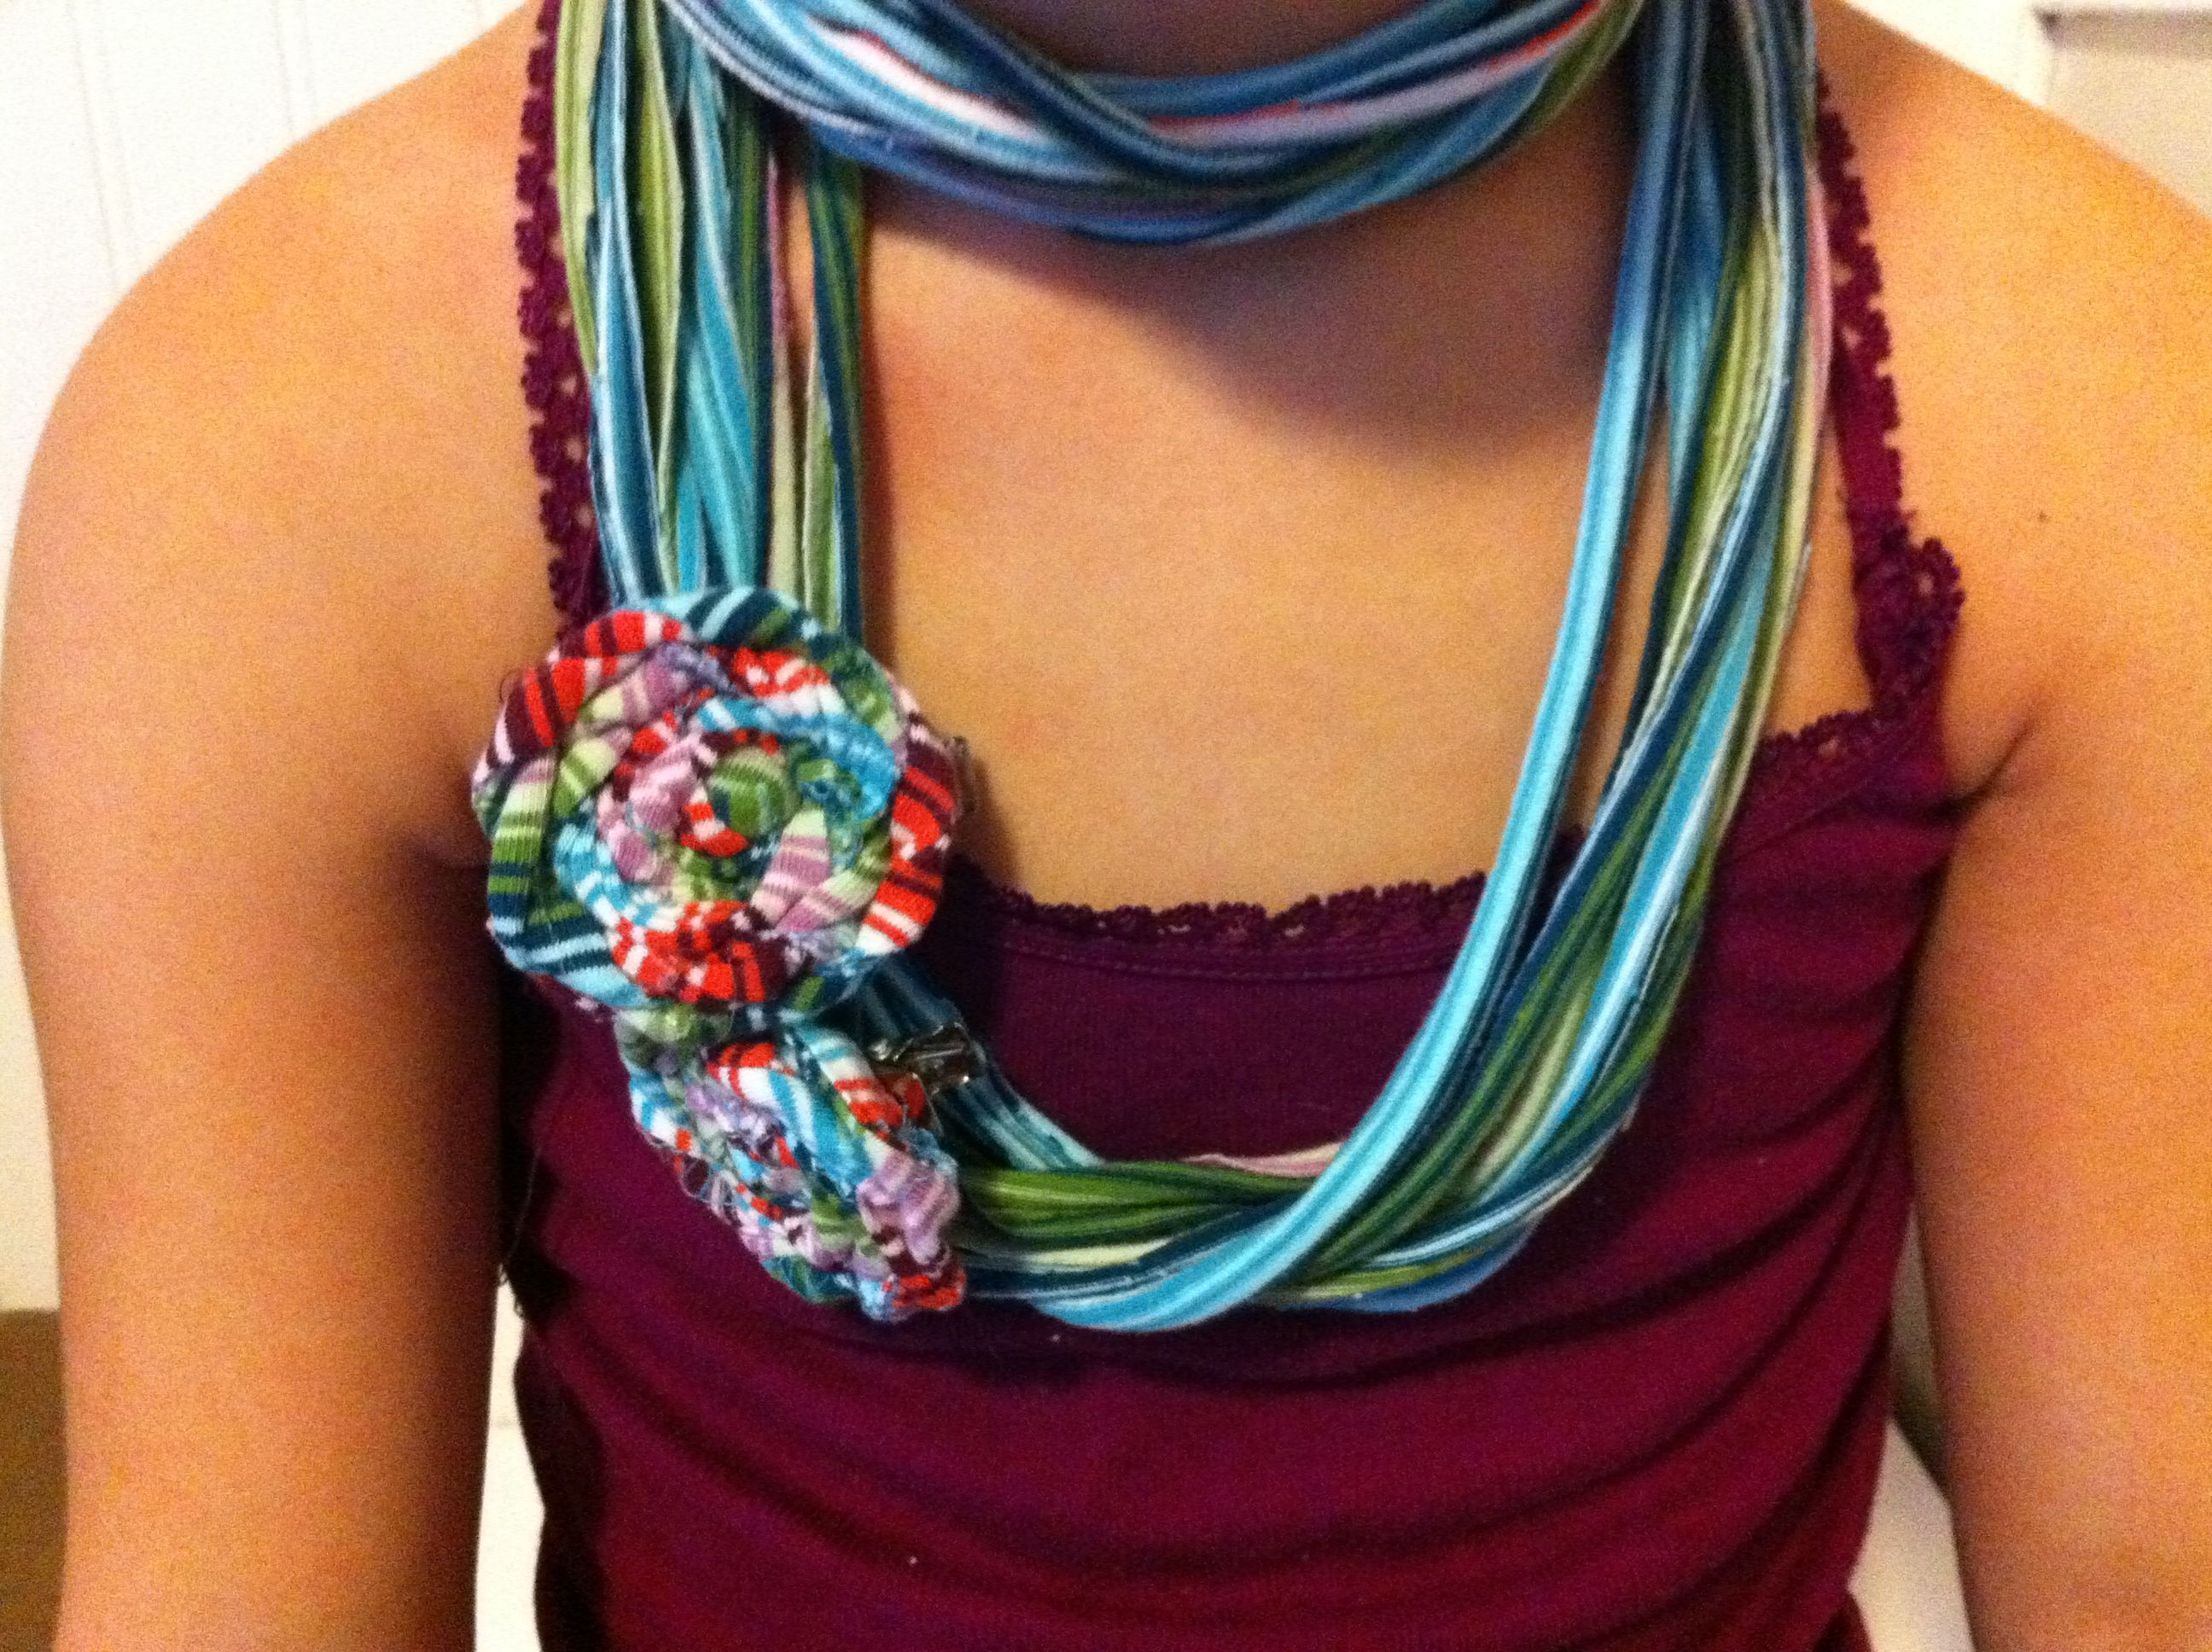 Pin by Deby Wright on T-shirt crafts | Pinterest